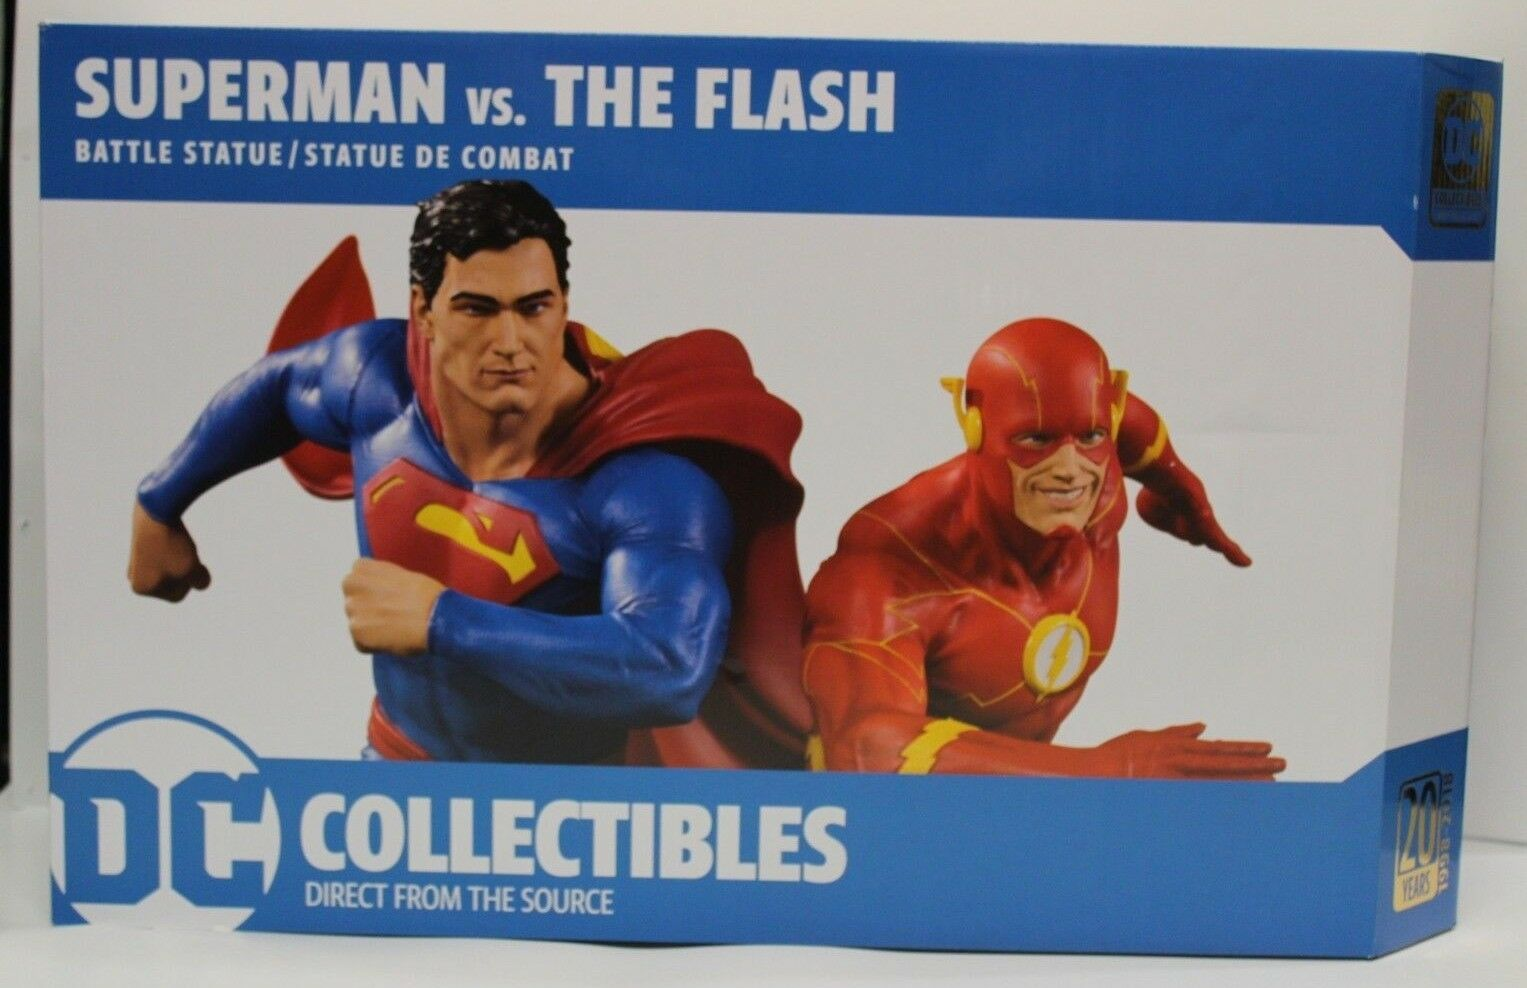 DC Gallery Superman vs the Flash Racing Battle Statue #1 of 5000 DC Collectibles